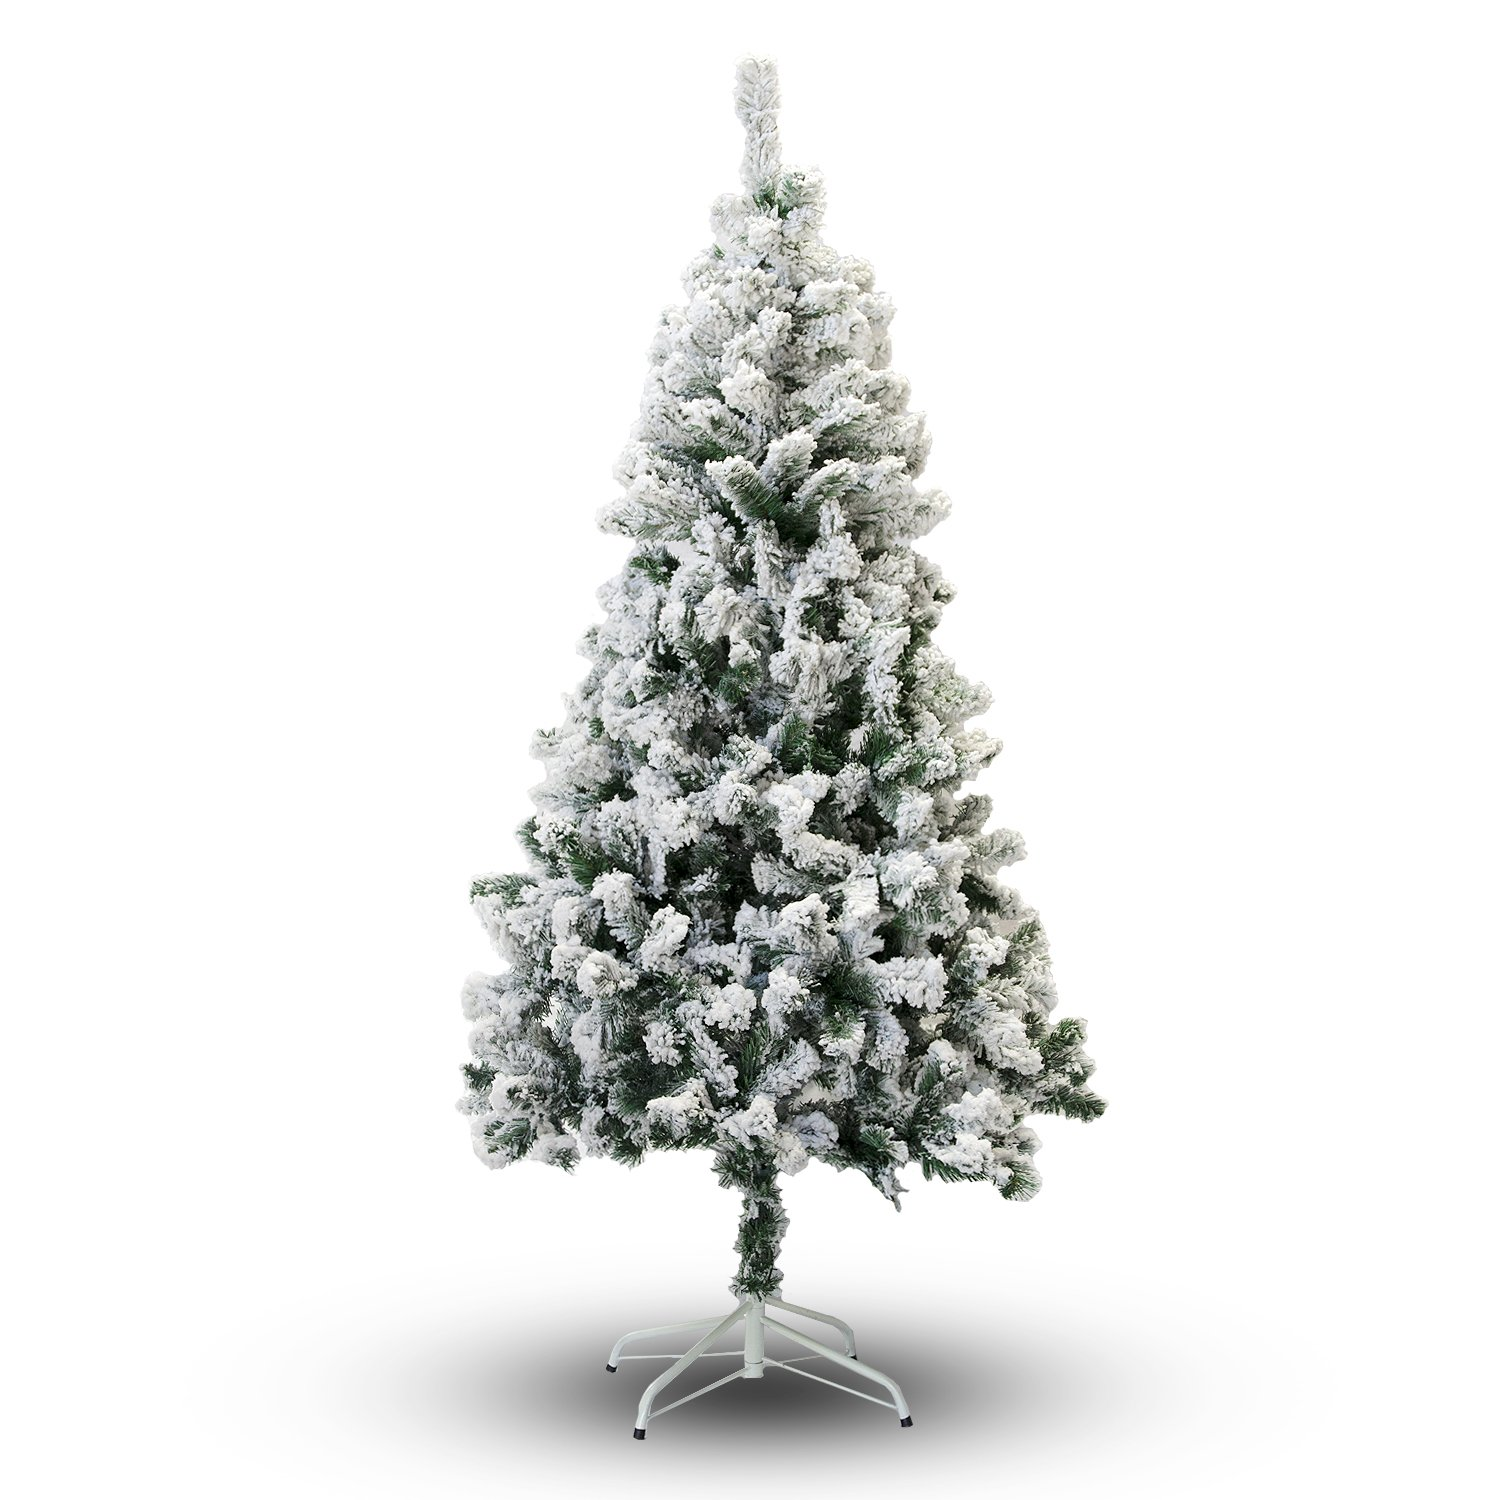 amazoncom perfect holiday christmas tree 6 feet flocked snow home kitchen - 4 Christmas Tree